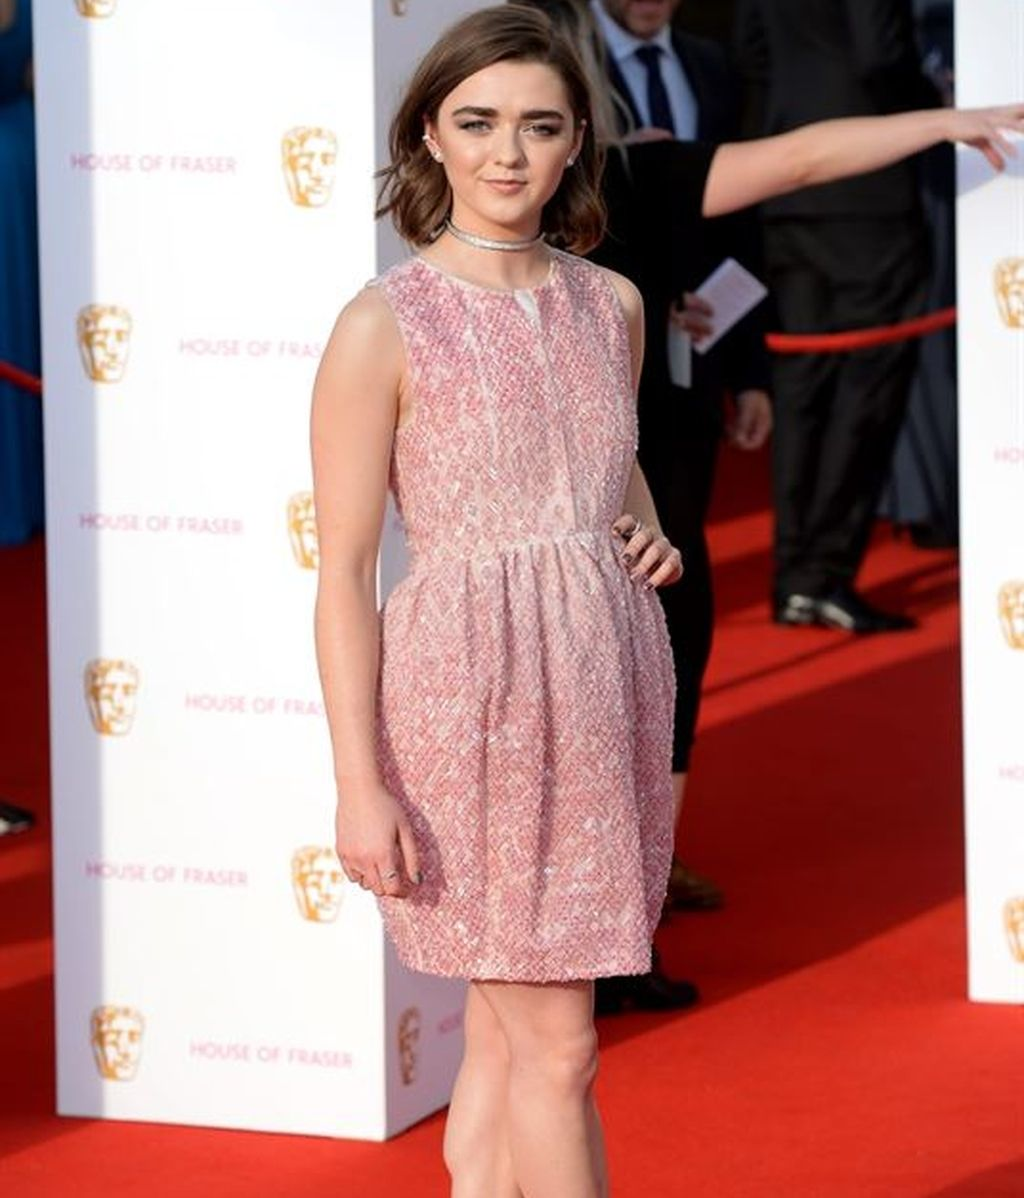 Maisie Williams, Arya